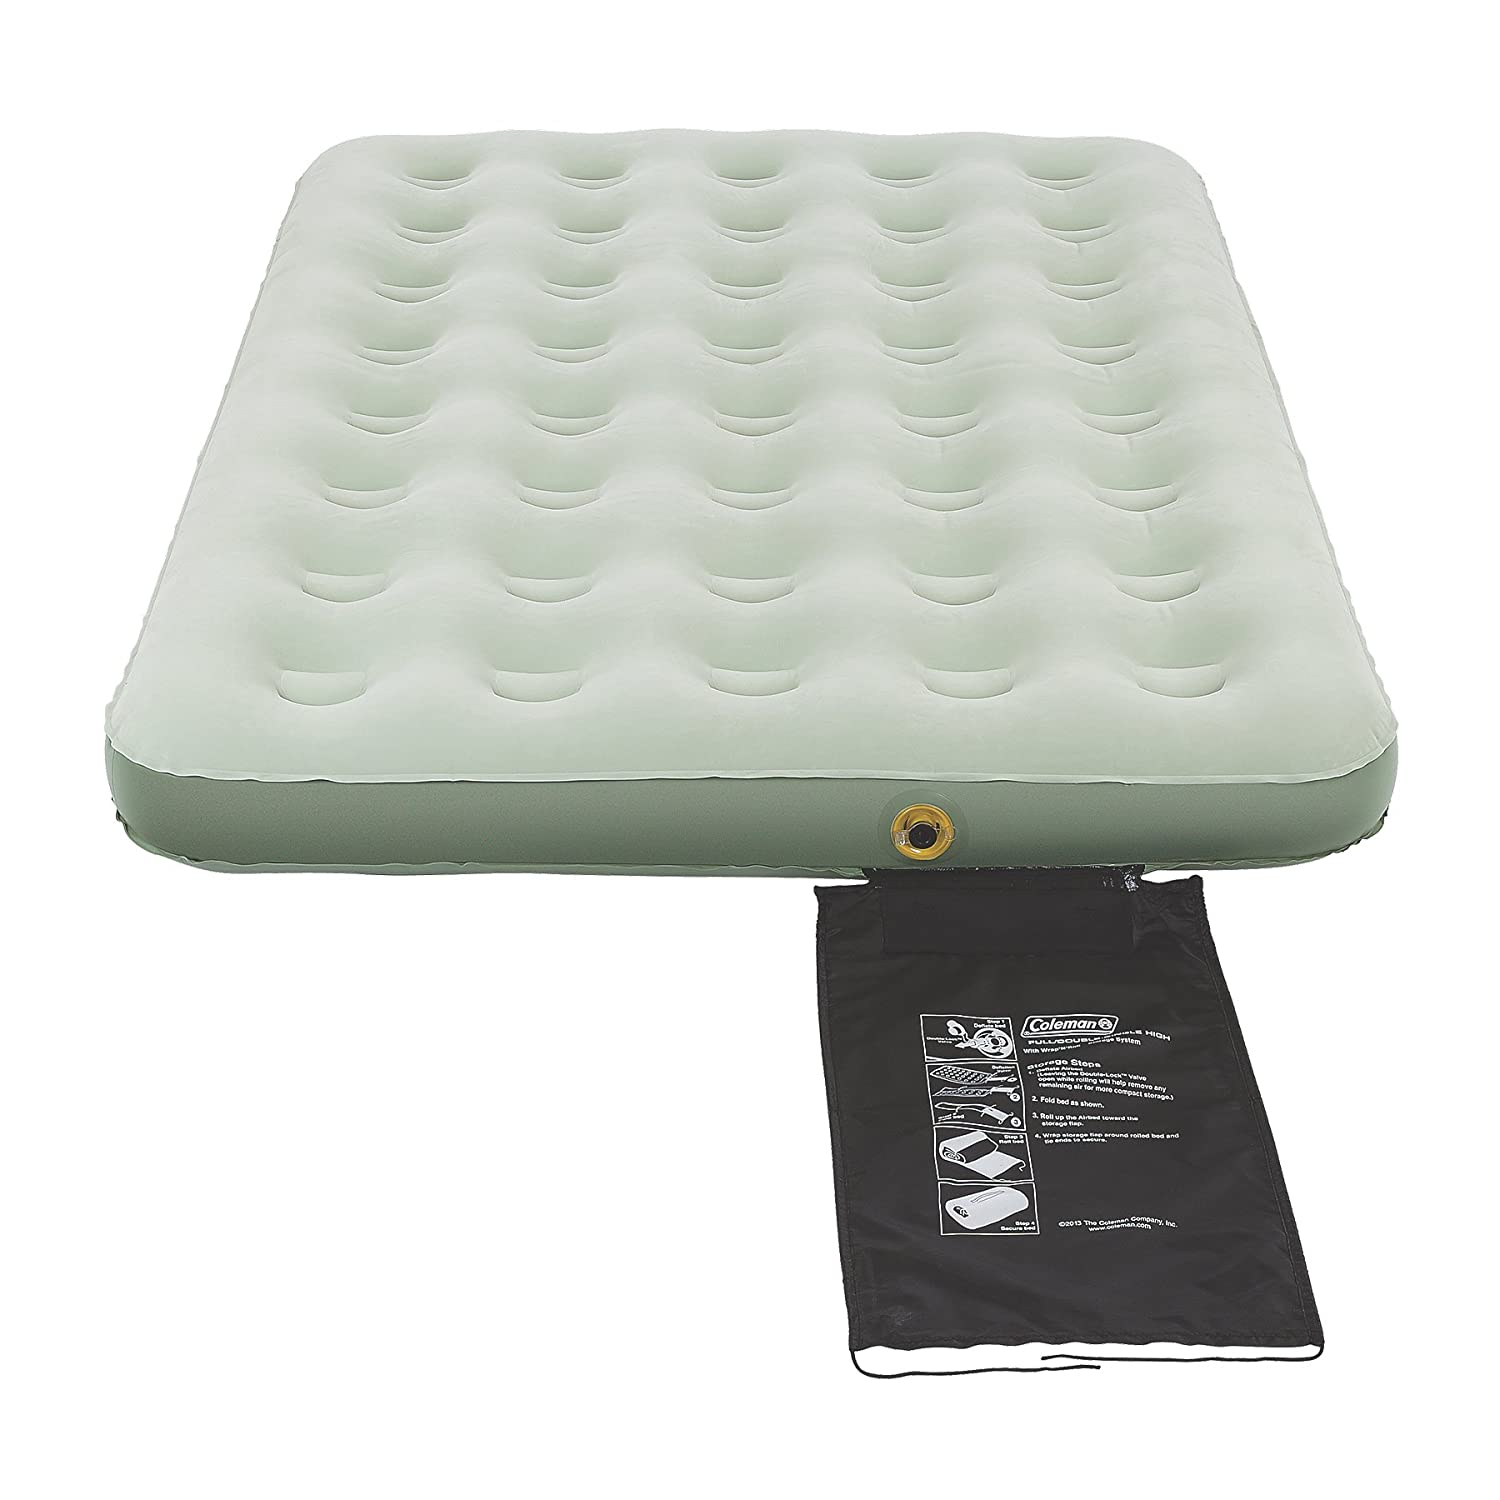 Amazon.com : Coleman EasyStay Single High Airbed : Sports \u0026 Outdoors